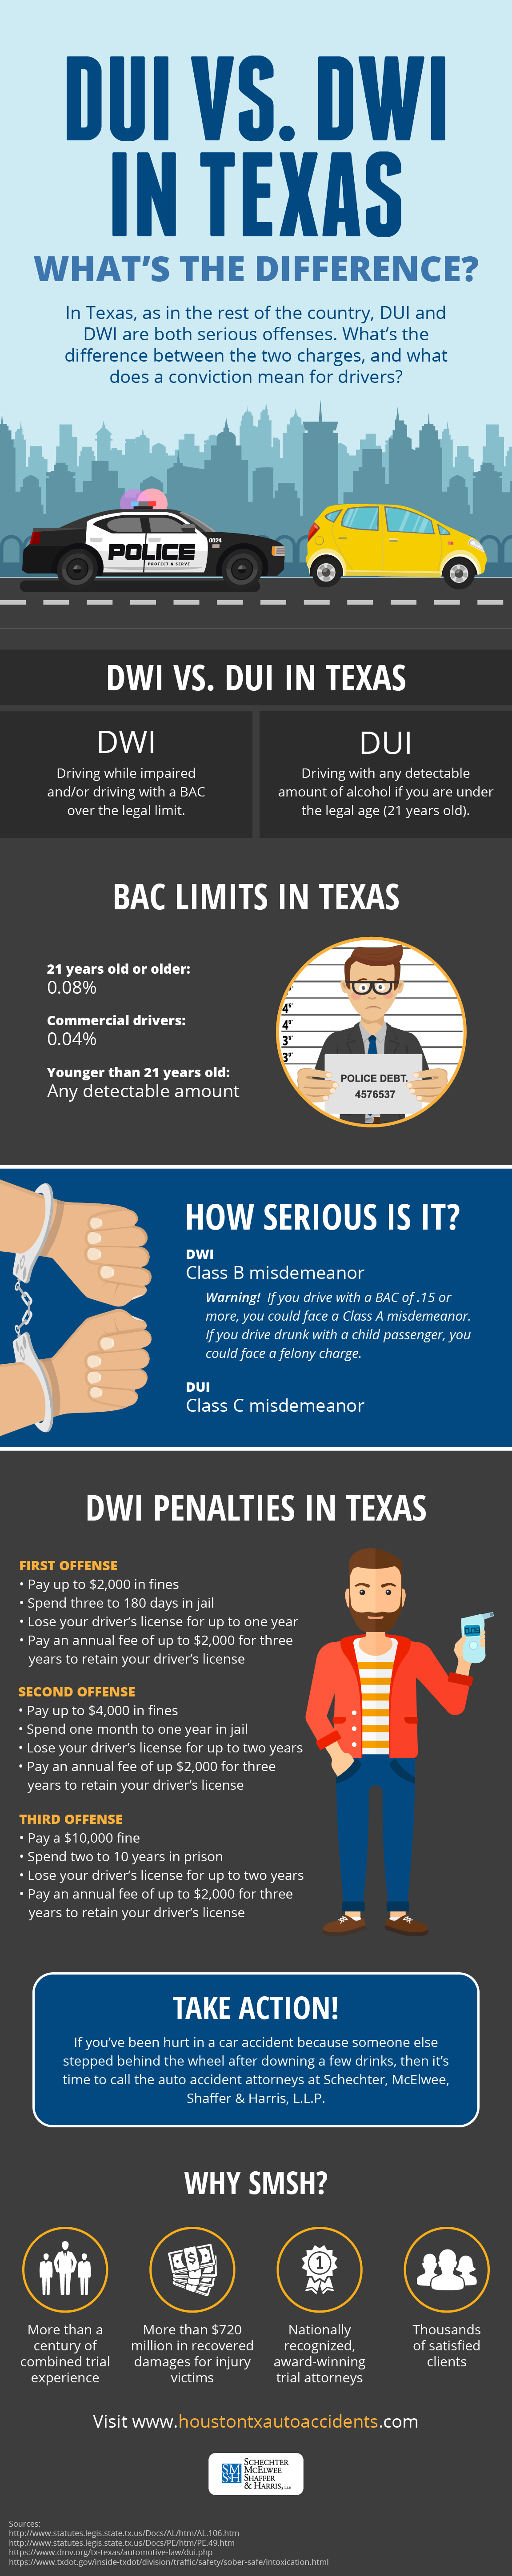 DUI vs. DWI in Texas Infographic